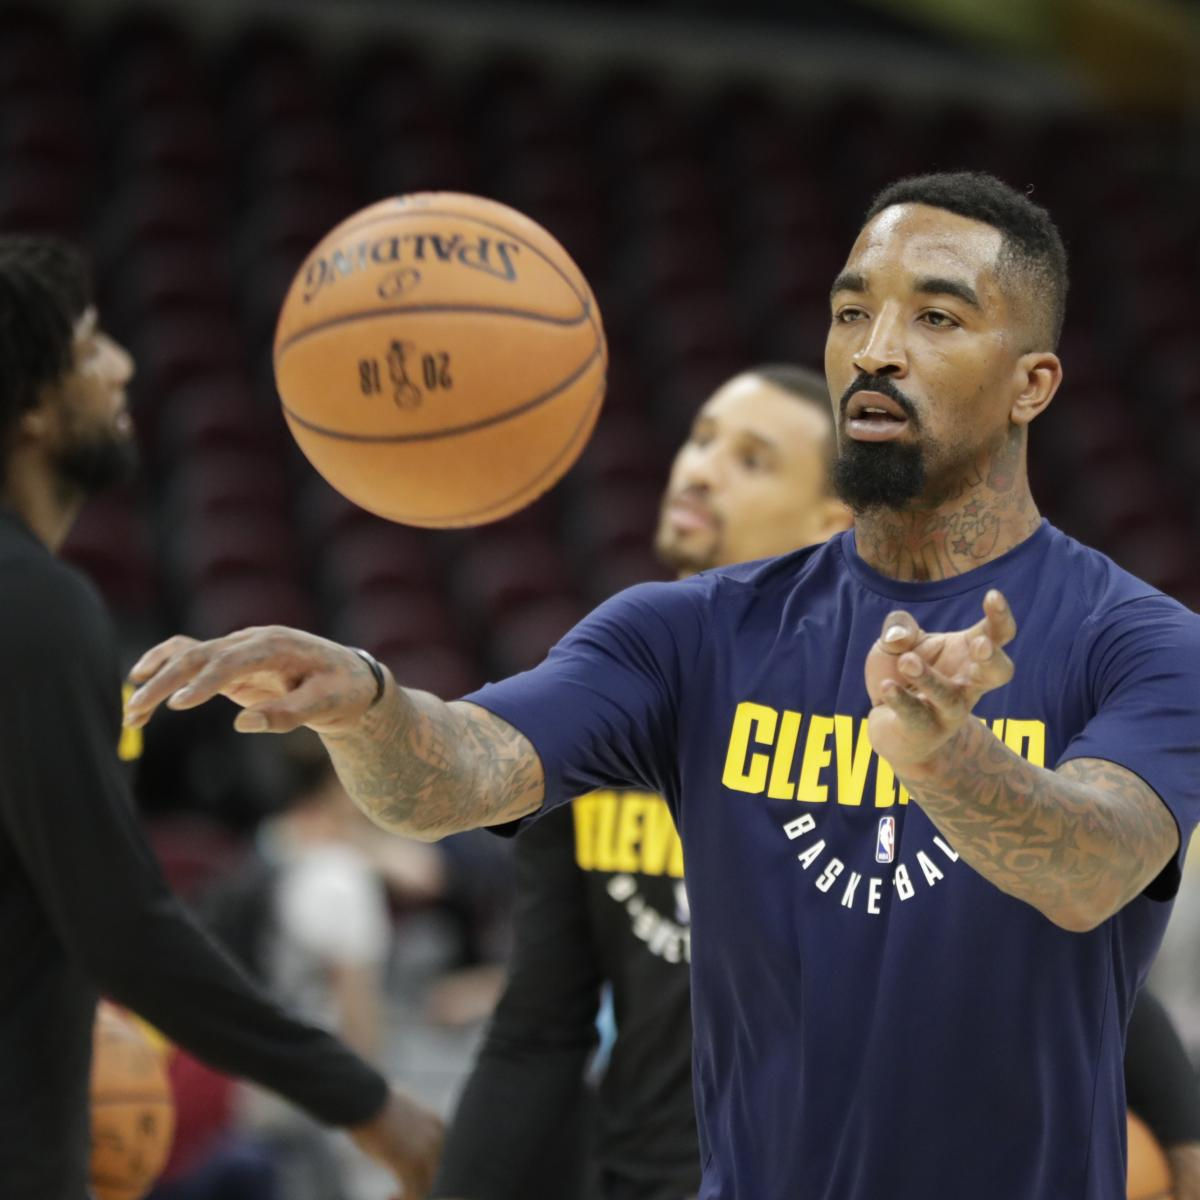 Warriors Come Out To Play Bleacher Report: NBA Trade Rumors: JR Smith Drawing 'Exploratory Interest